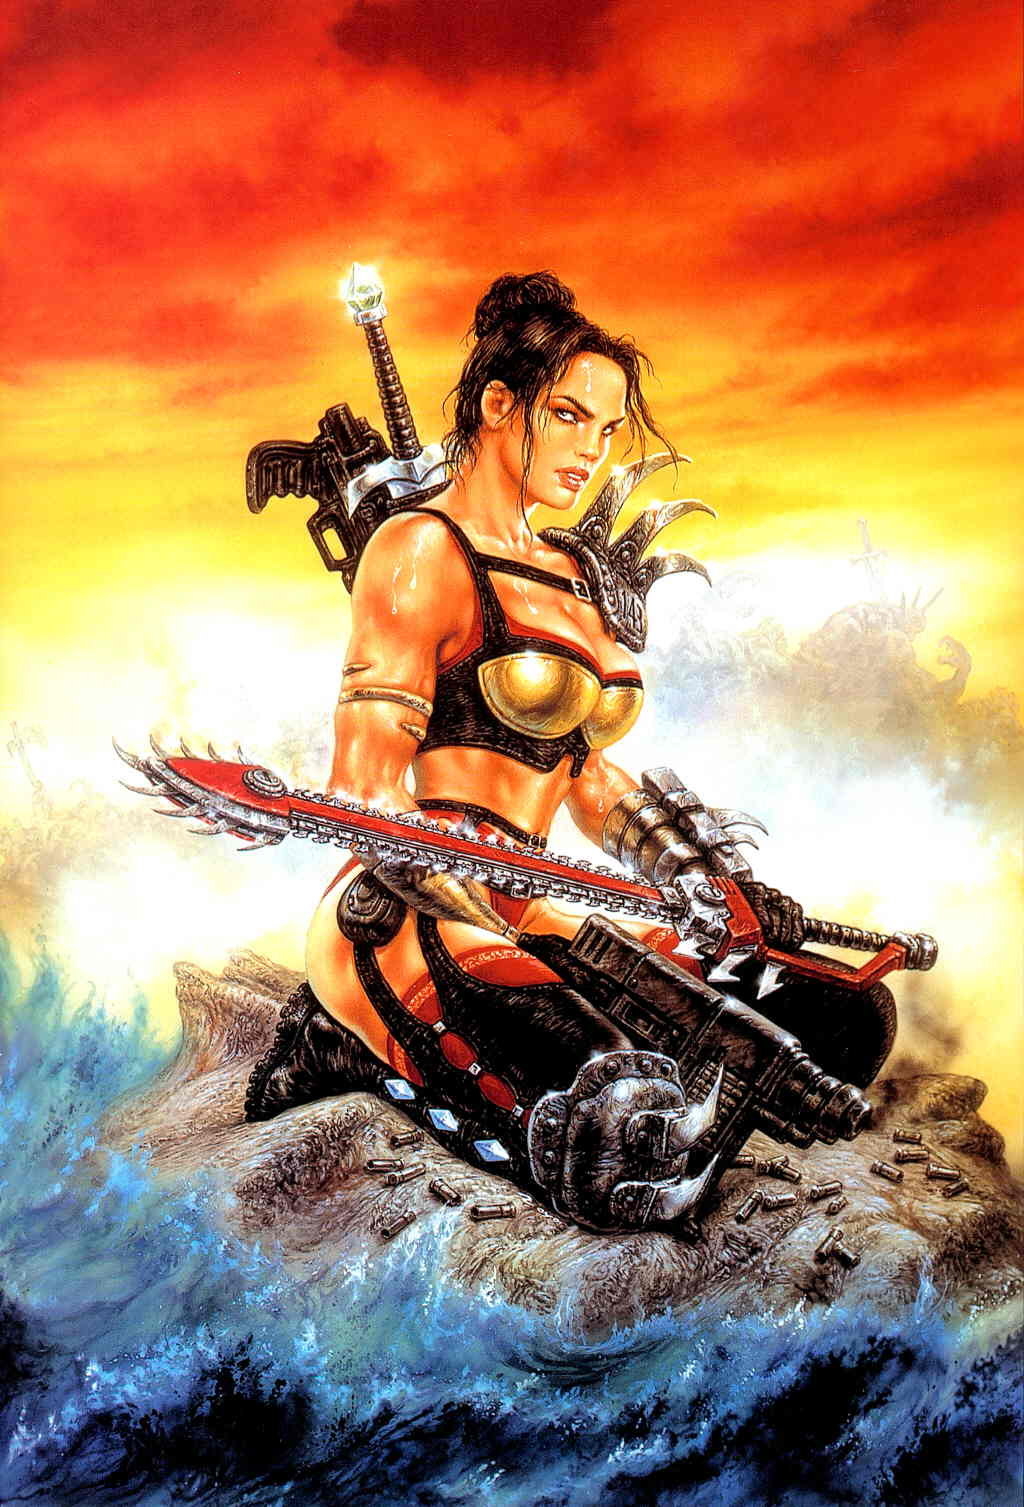 Remarkable, this luis royo heavy metal